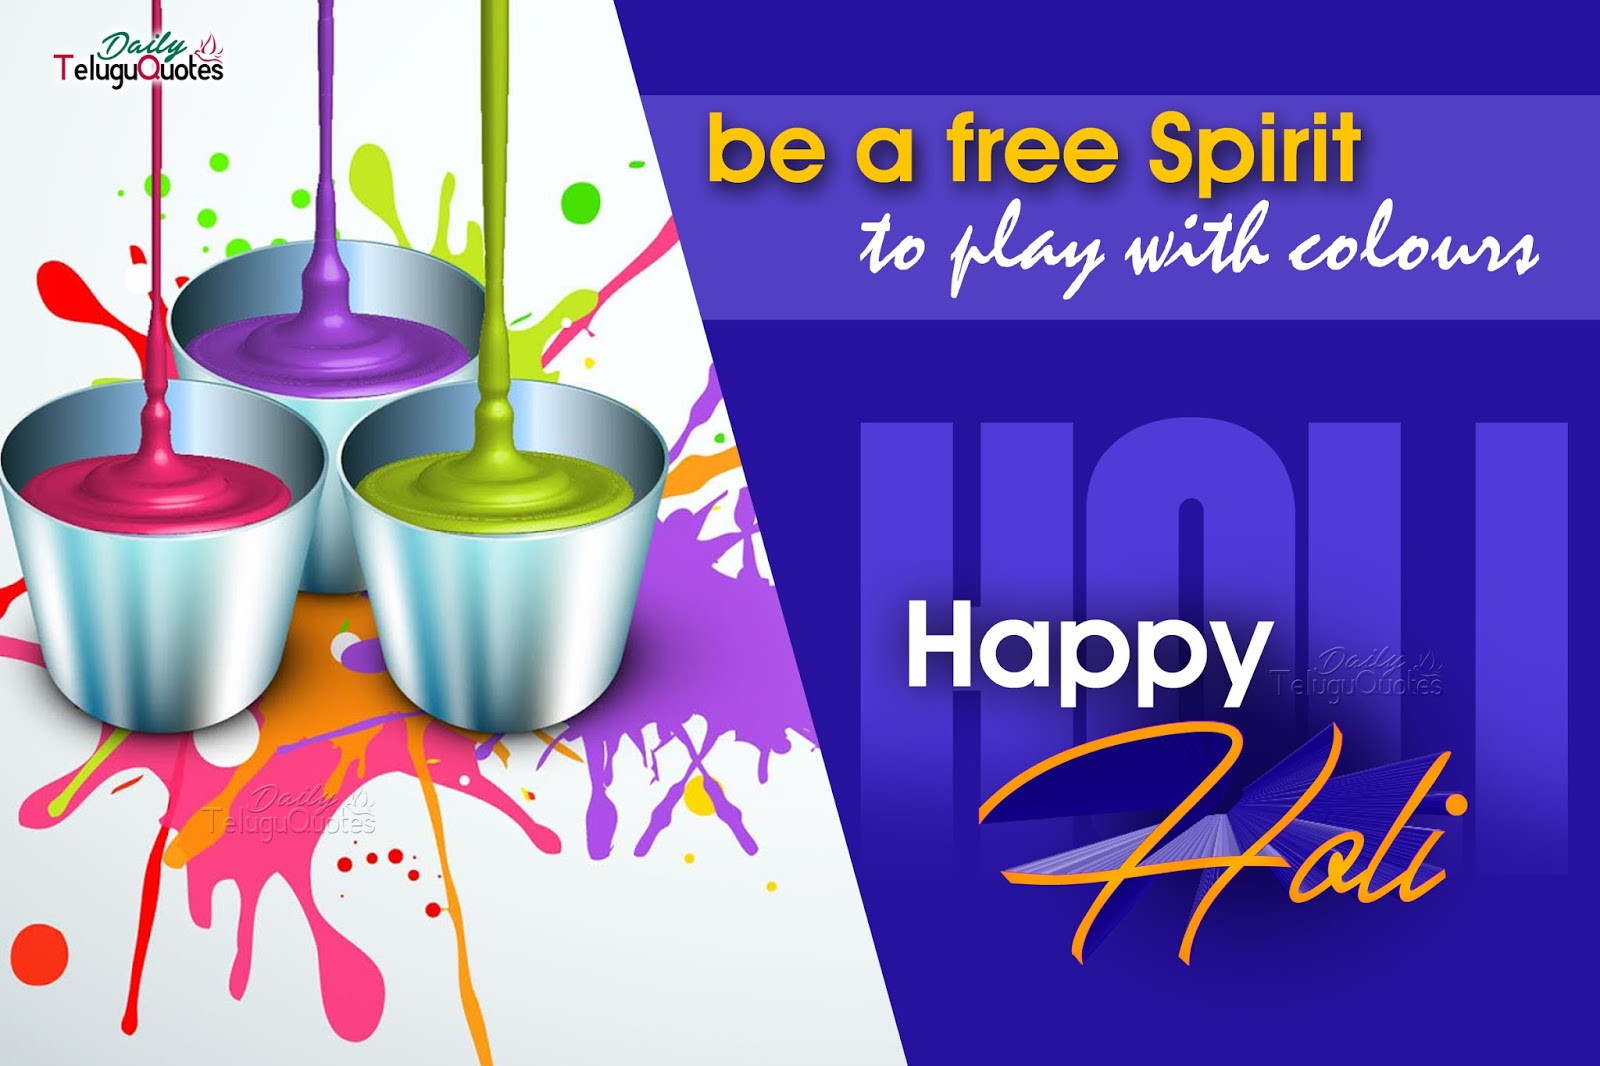 Happy holi wishes quotes and greetings hd wallpapers latest holi wishes quotes greetings sms messages and m4hsunfo